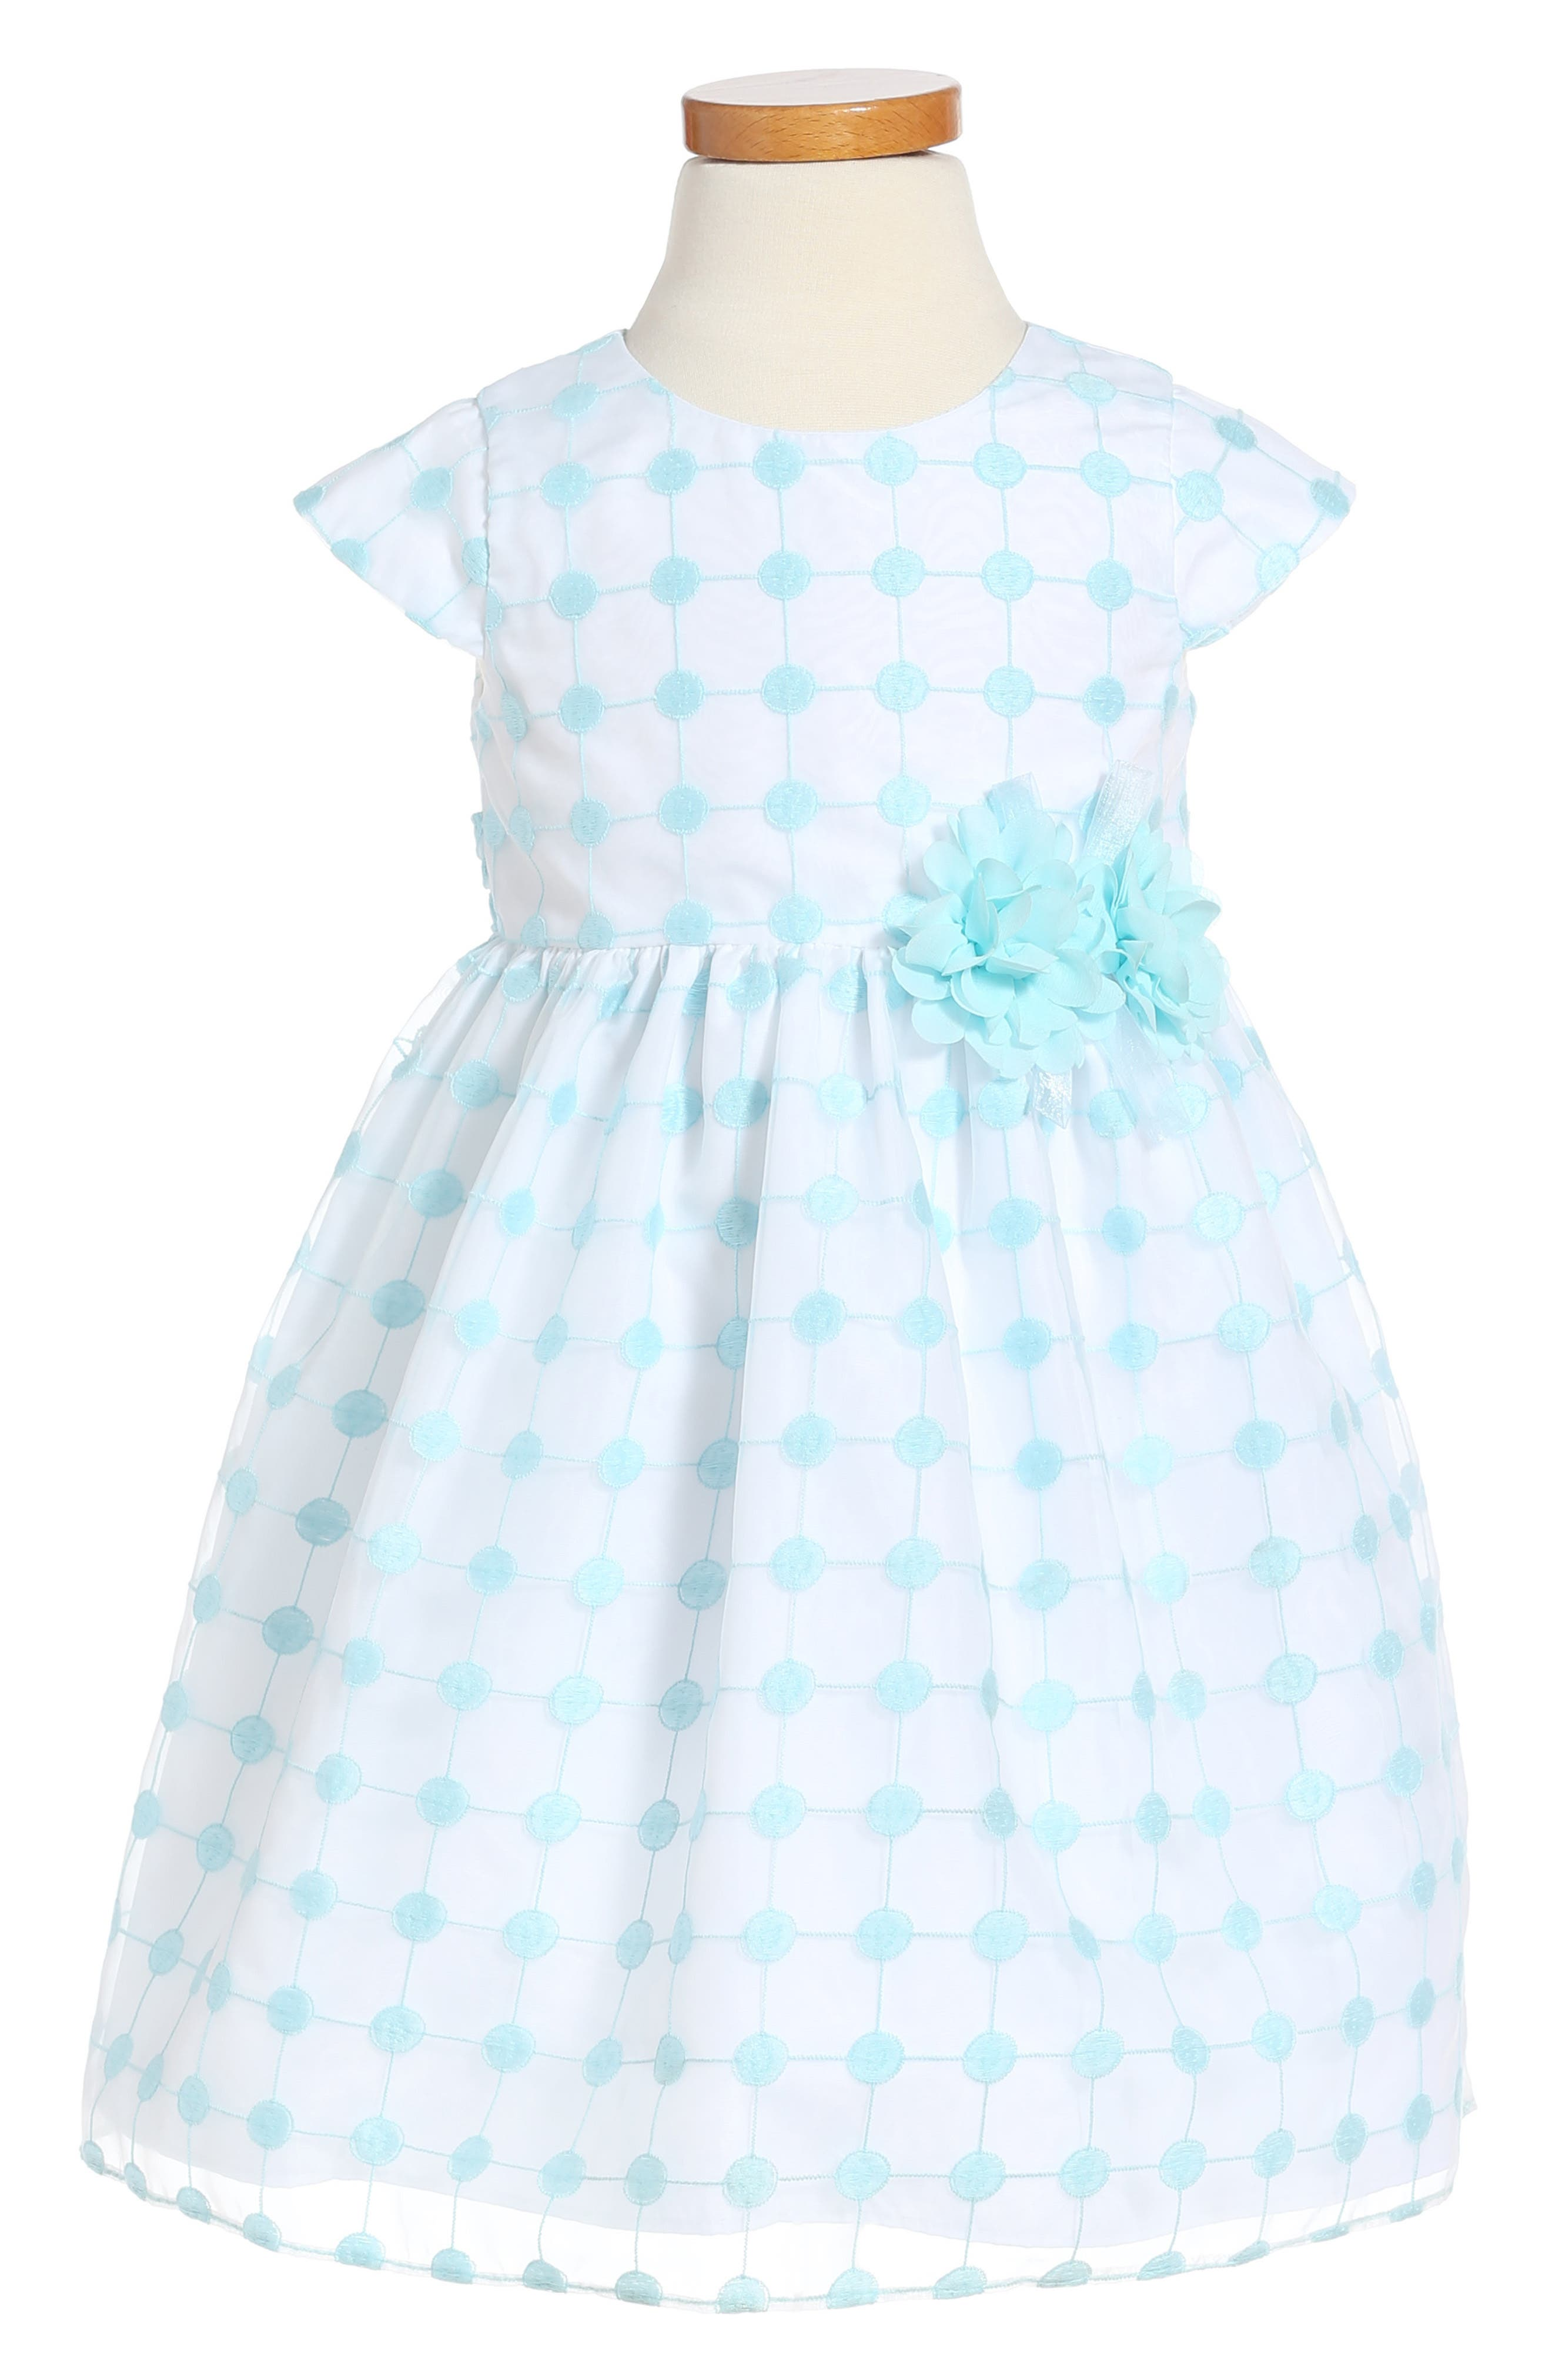 Pippa & Julie Embroidered Mesh Dress (Toddler Girls)